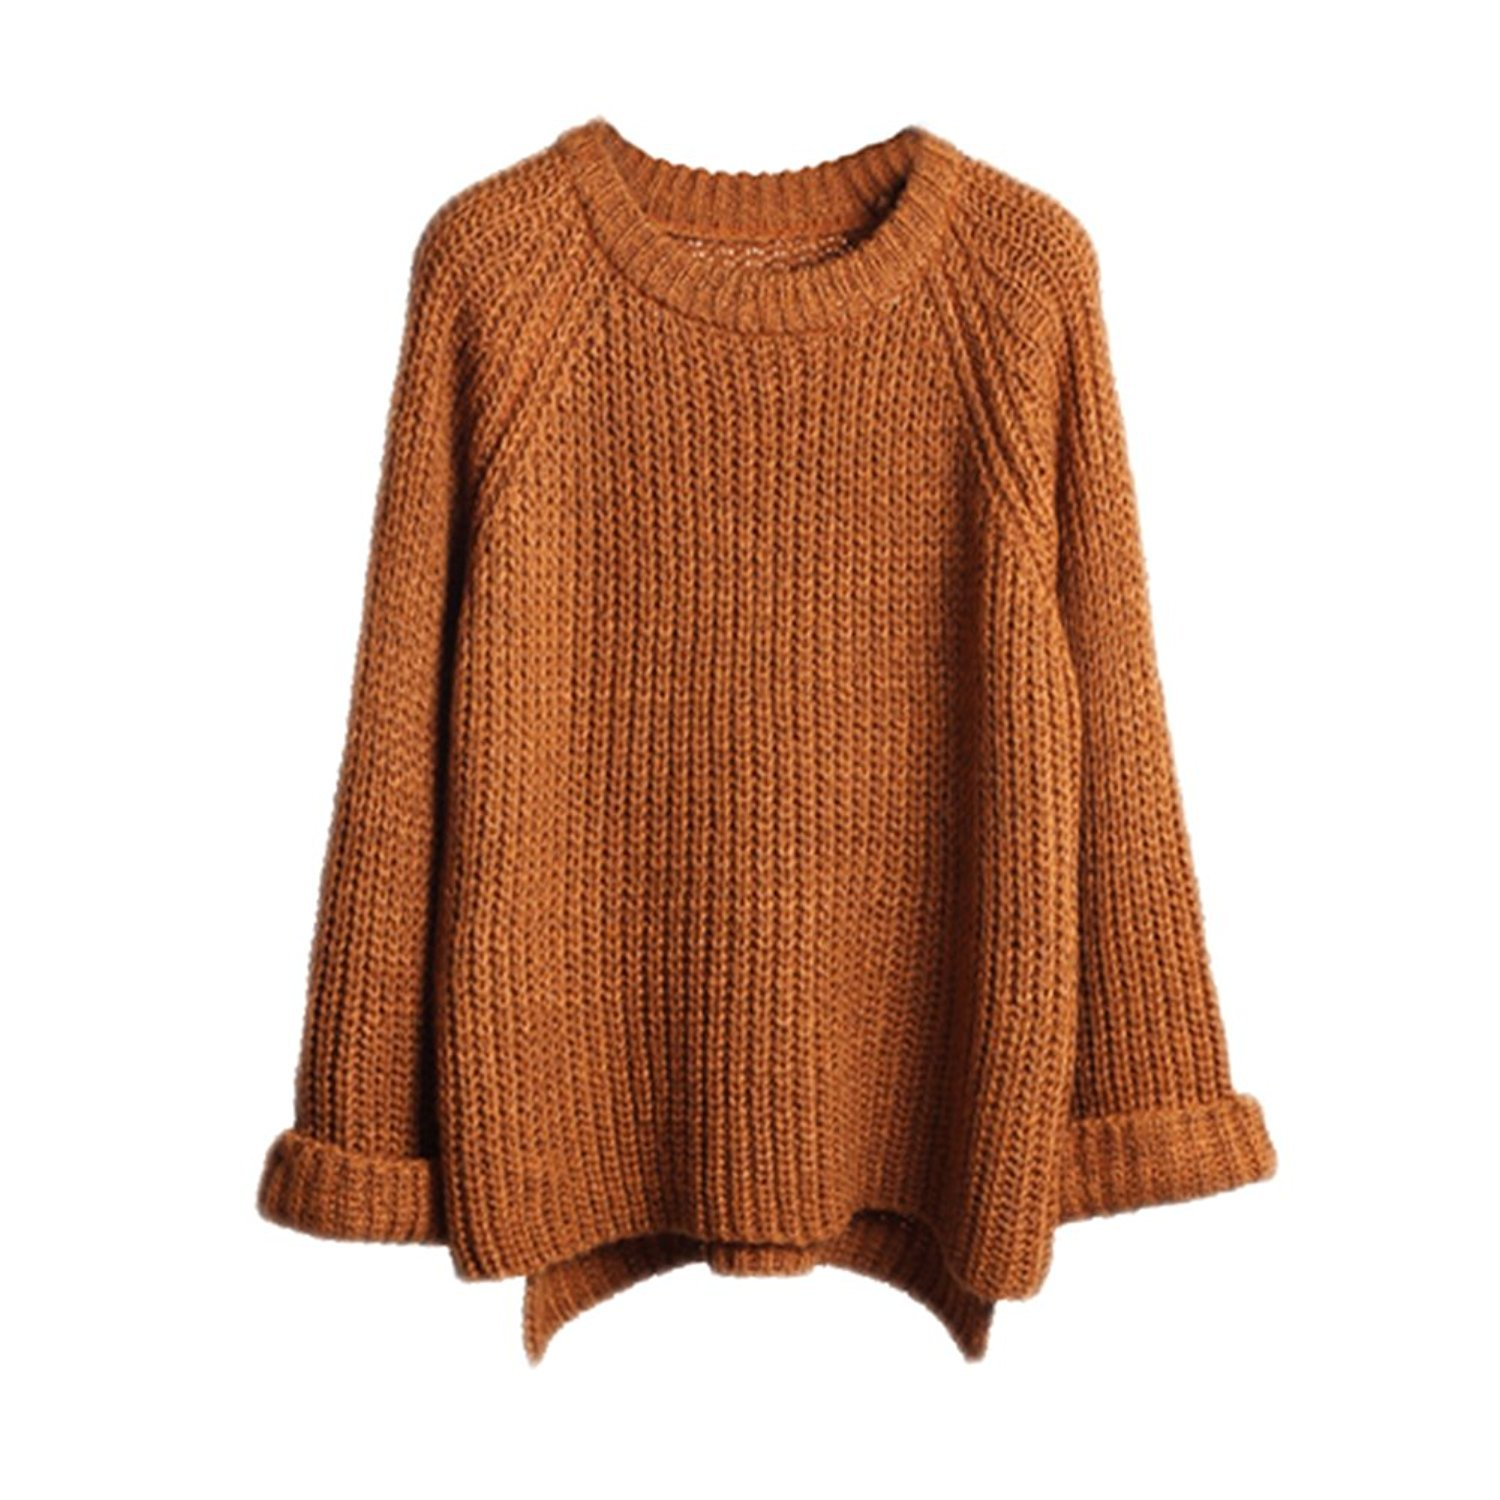 Chuanqi Women Oversized Knitted Sweater Long Sleeve V-Neck Loose ...